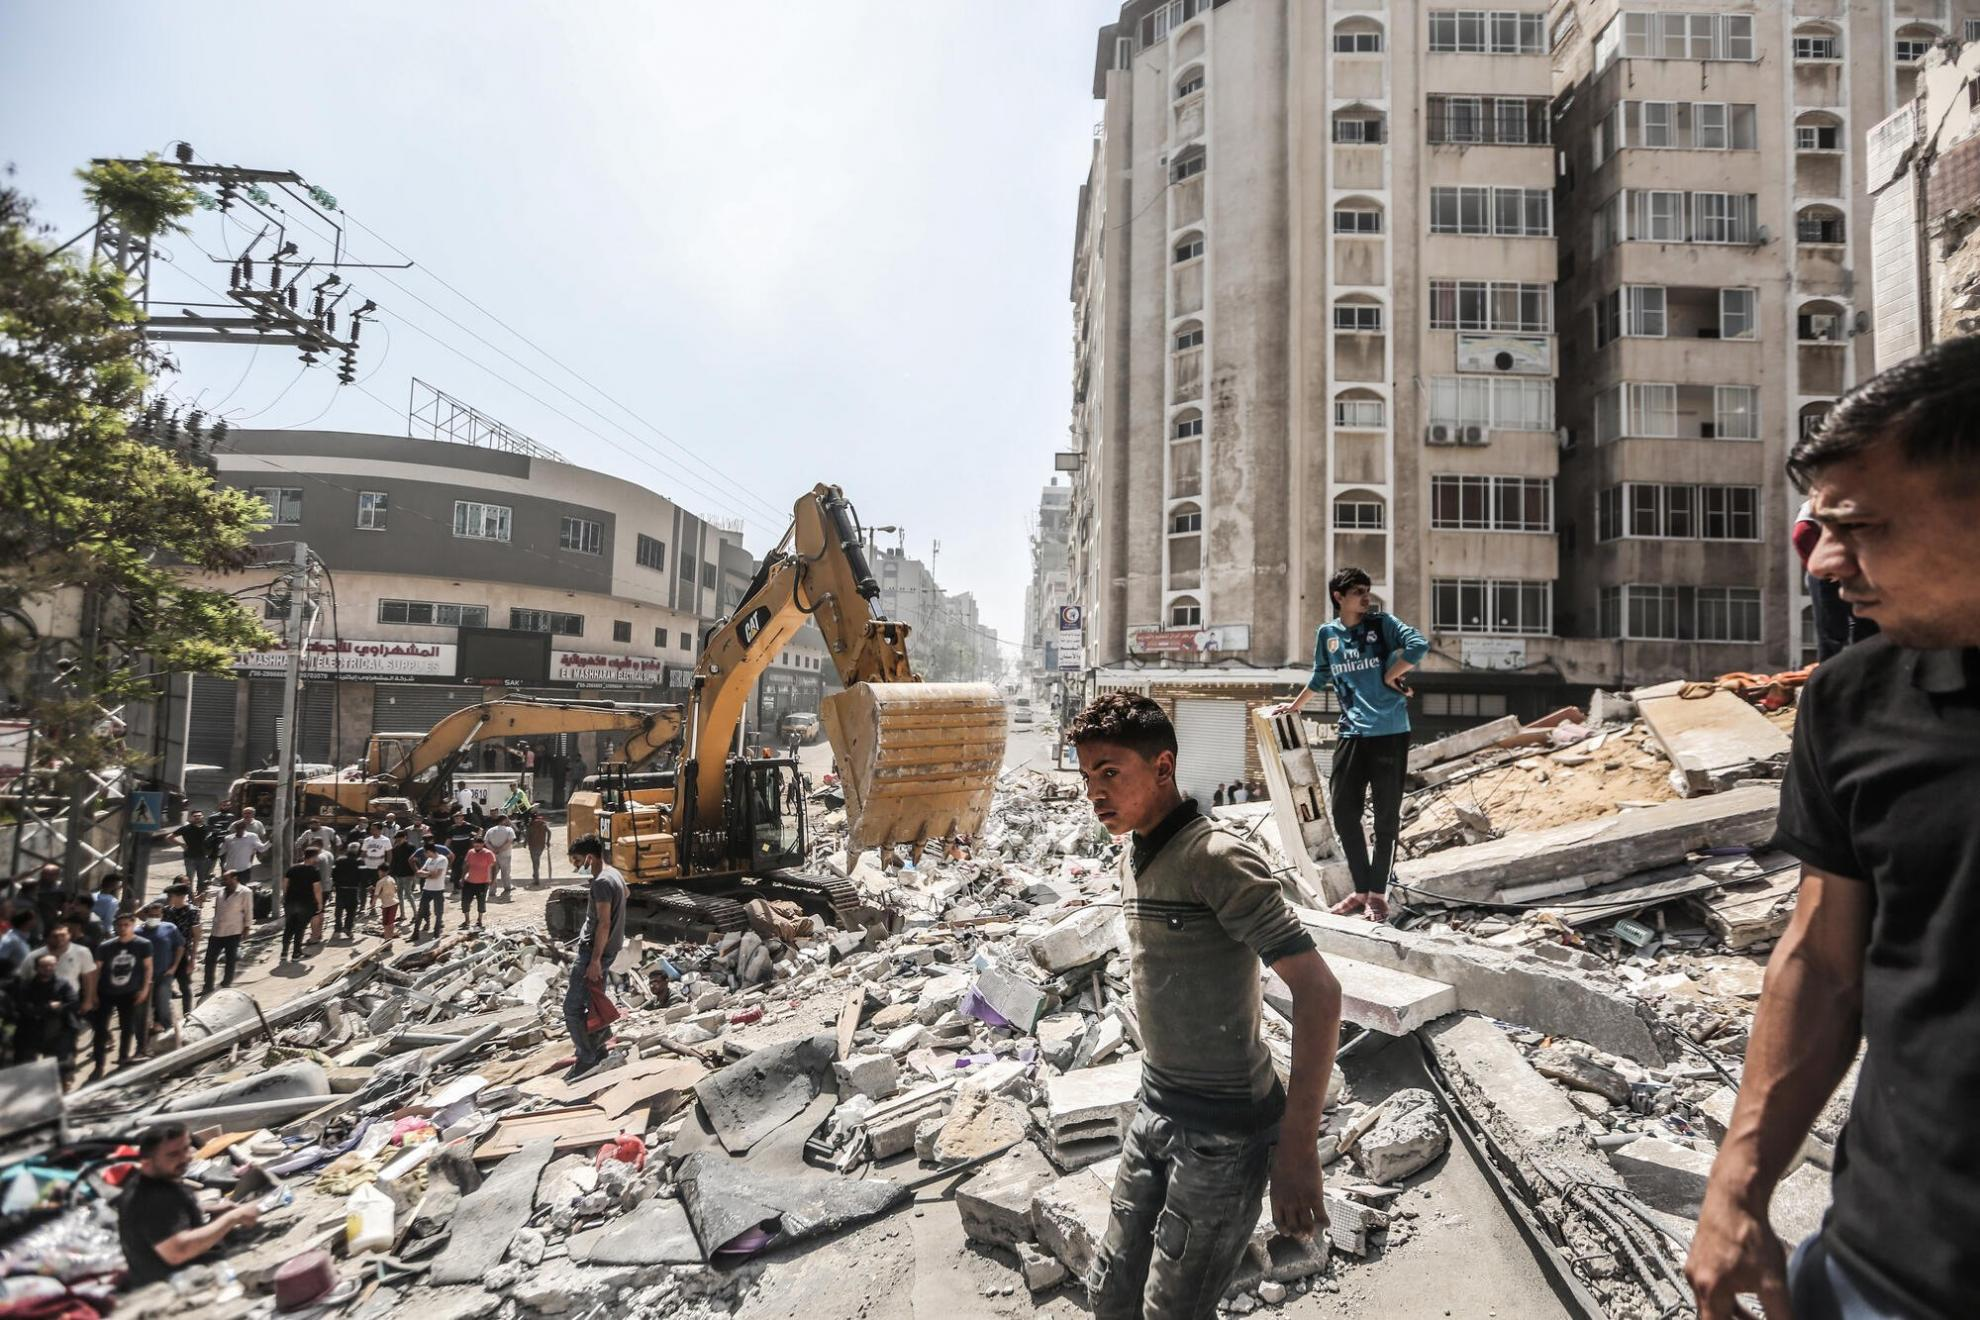 People clearing debris after an Israeli airstrike destroyed a residential tower in Gaza City